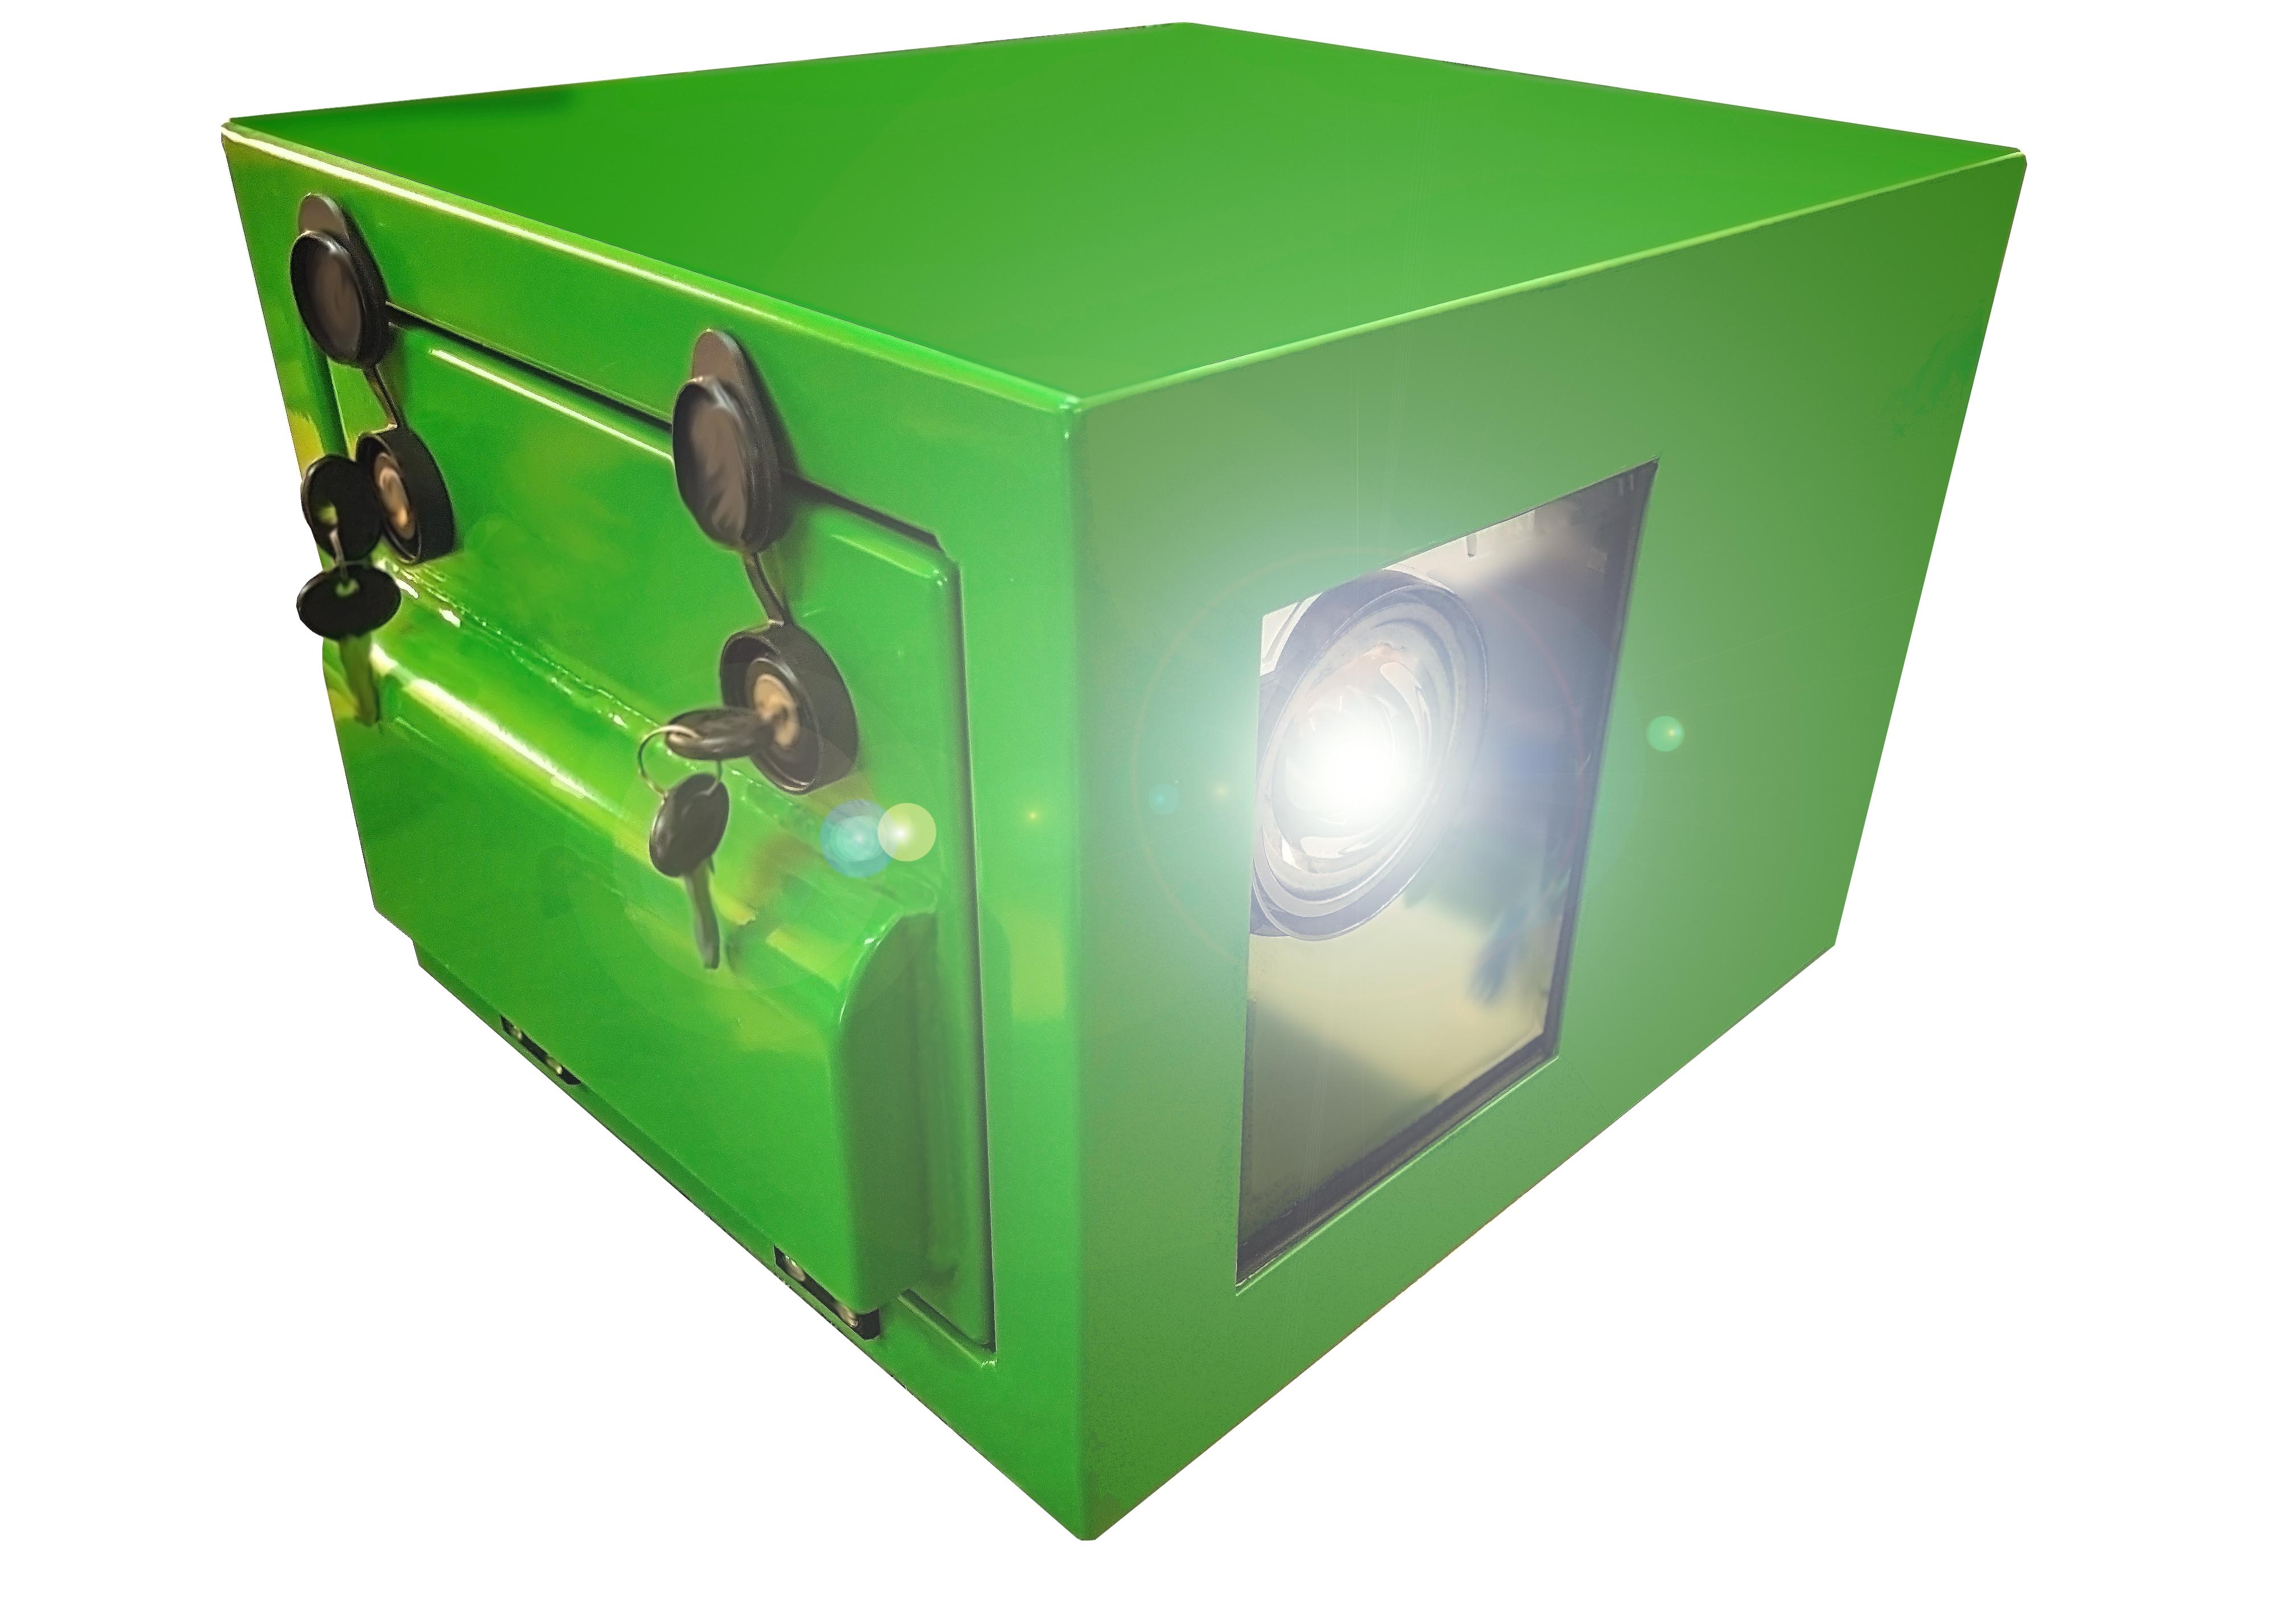 outdoor golf projector enclosure